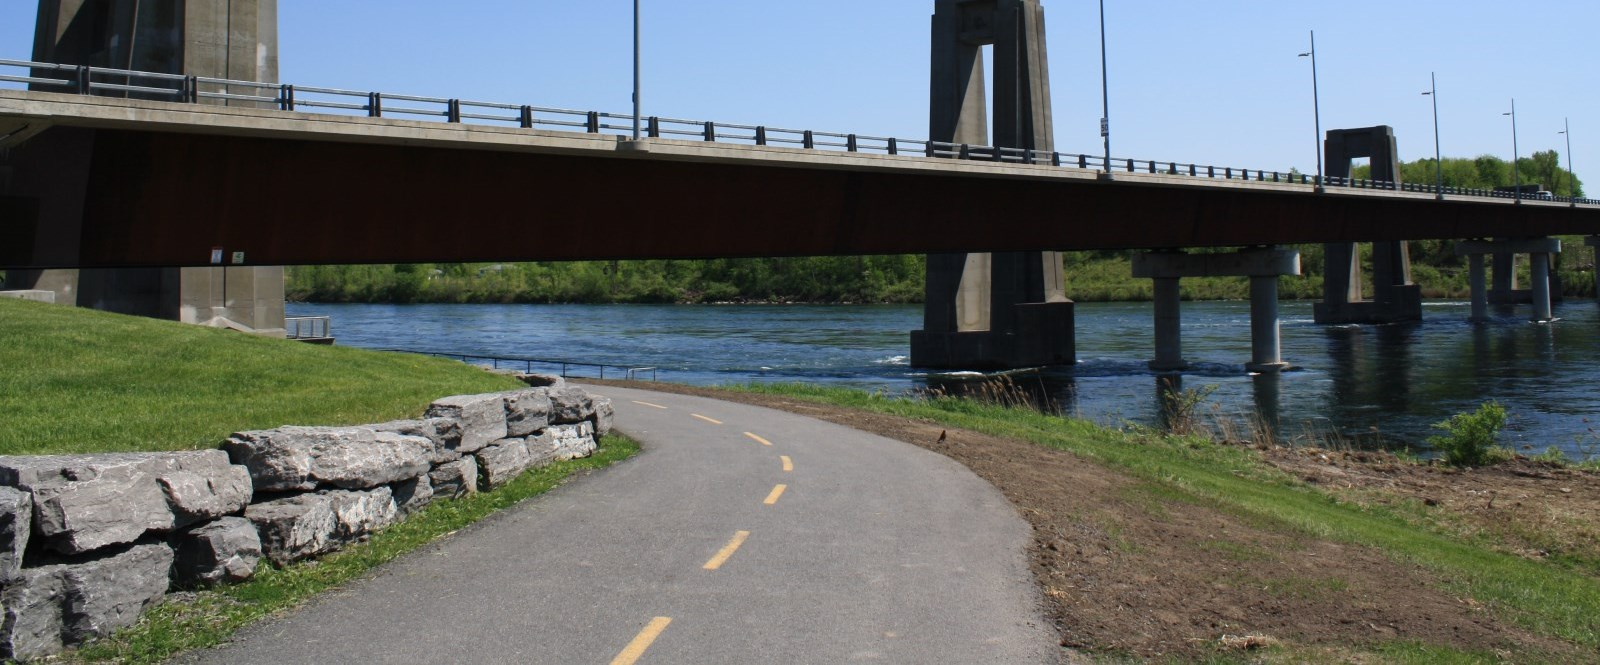 cornwall Recreational path going under bridge to USA